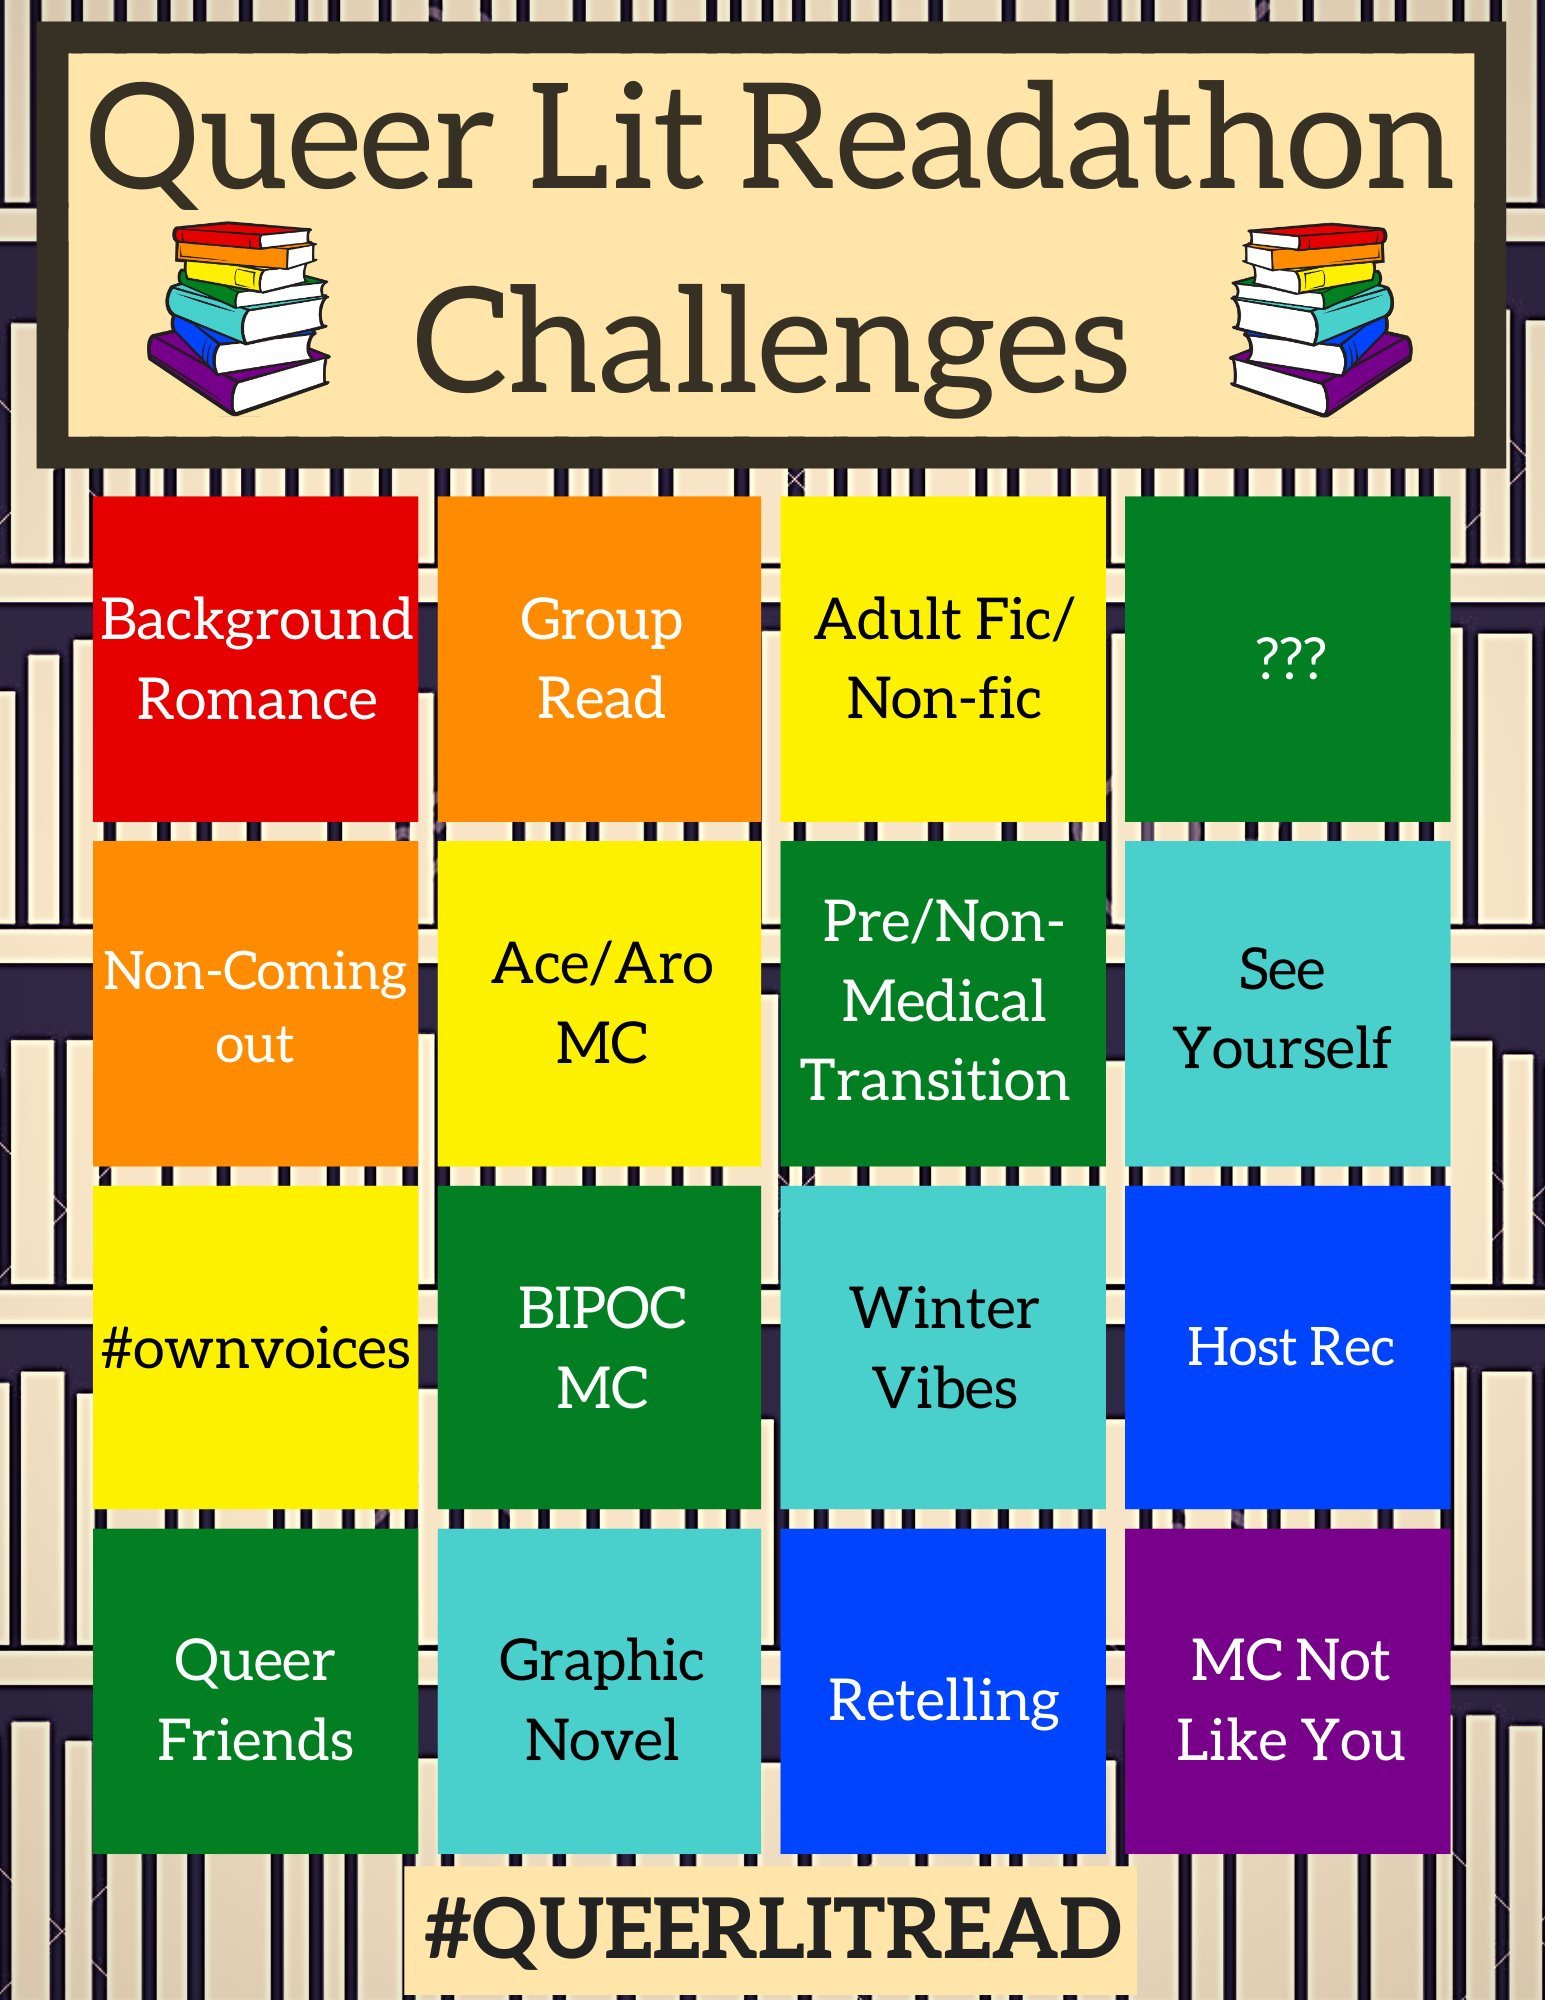 """A simple background of tan book shelves with the title """"Queer Lit Readathon Challenges."""" A rainbow 4 by 4 bingo board with the challenges: Background Romance, Group Read, Adult Fiction/Nonfiction, ???, Non Coming Out, Ace/Aro MC, Pre/Non-Medical Transition, See Yourself, #ownvoices, BIPOC MC, Winter Vibes, Host Rec, Queer Friends, Graphic Novel, Retelling, MC Not Like You. Bottom text """"#QueerLitRead"""""""